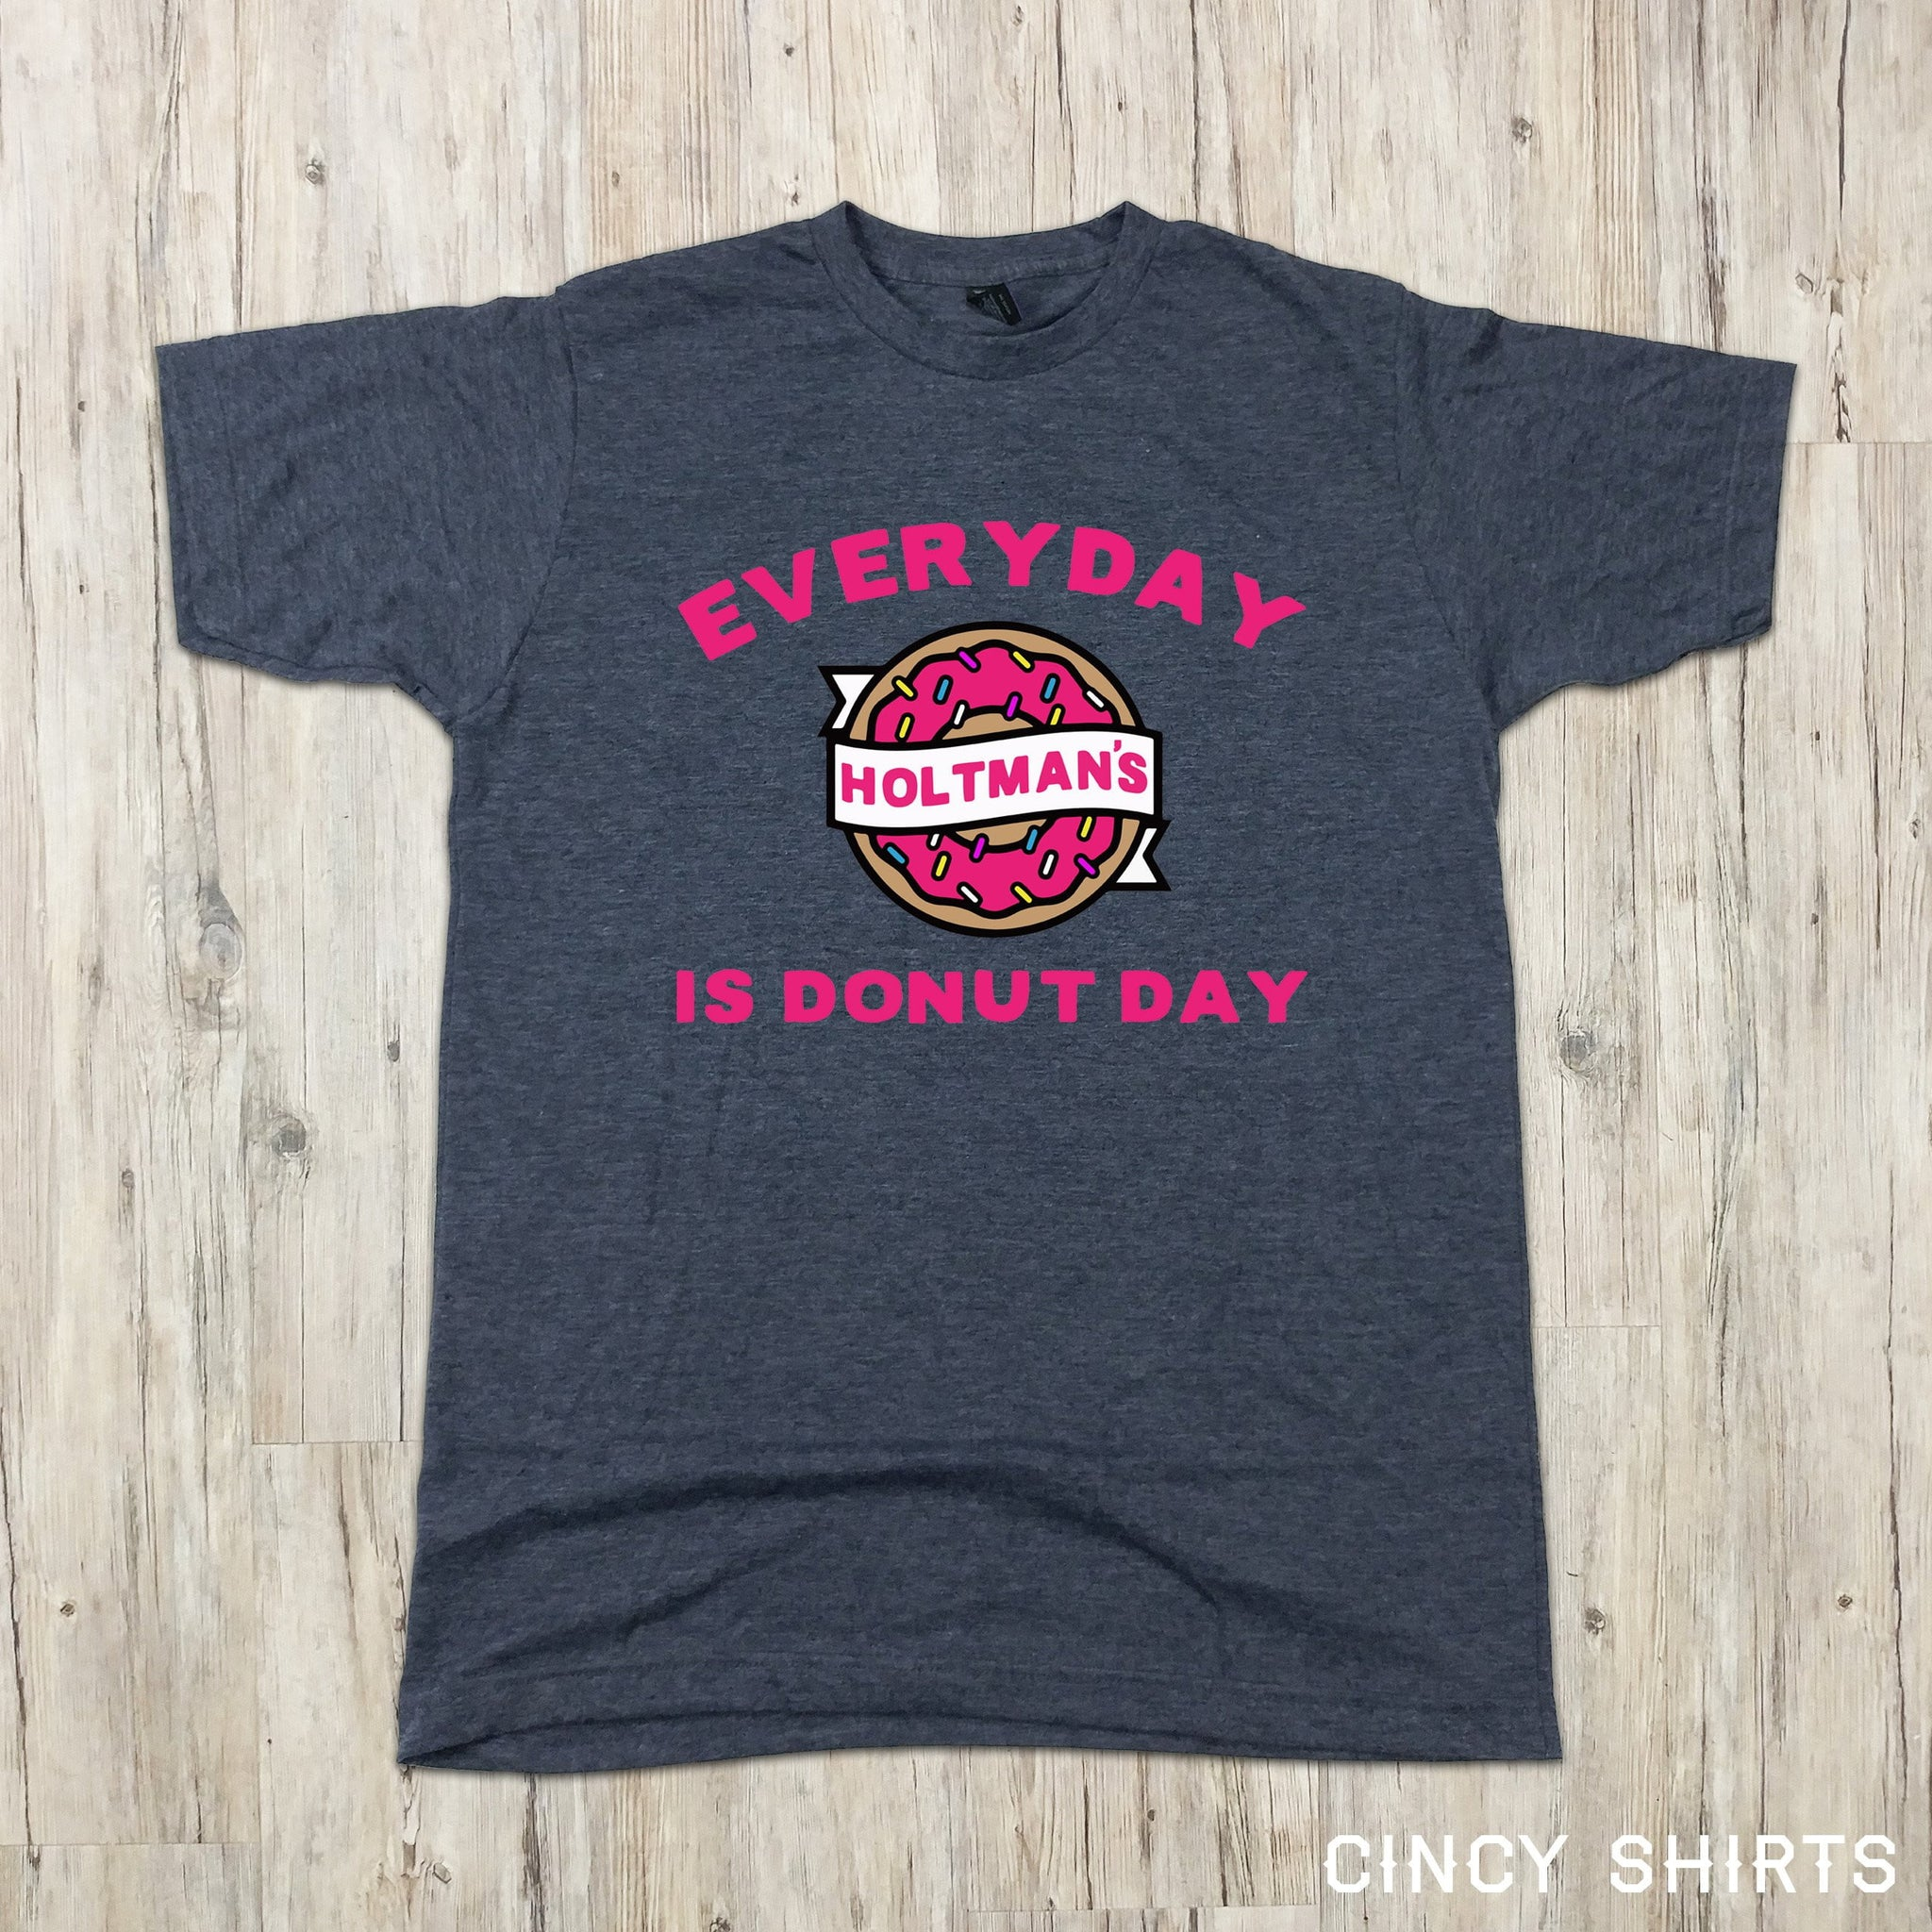 9c53fbd8a Holtman s Every Day is Donut Day T-shirt